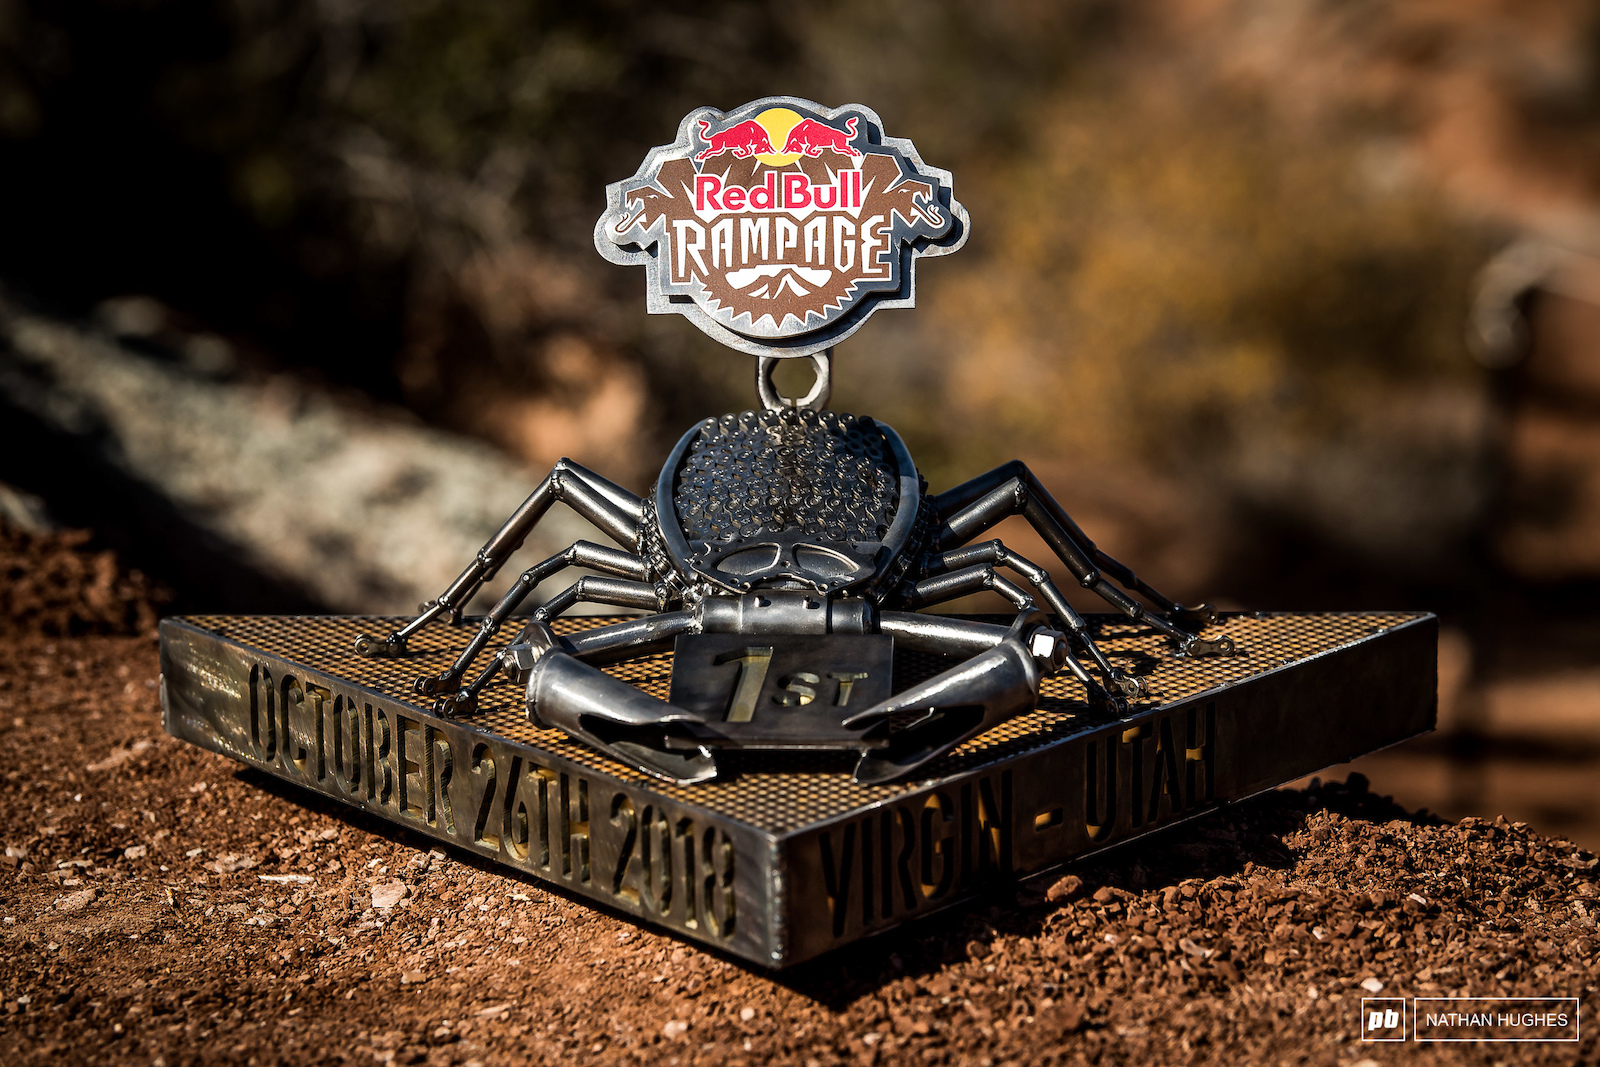 A scorpion 21 riders would love to get stung by tomorrow.